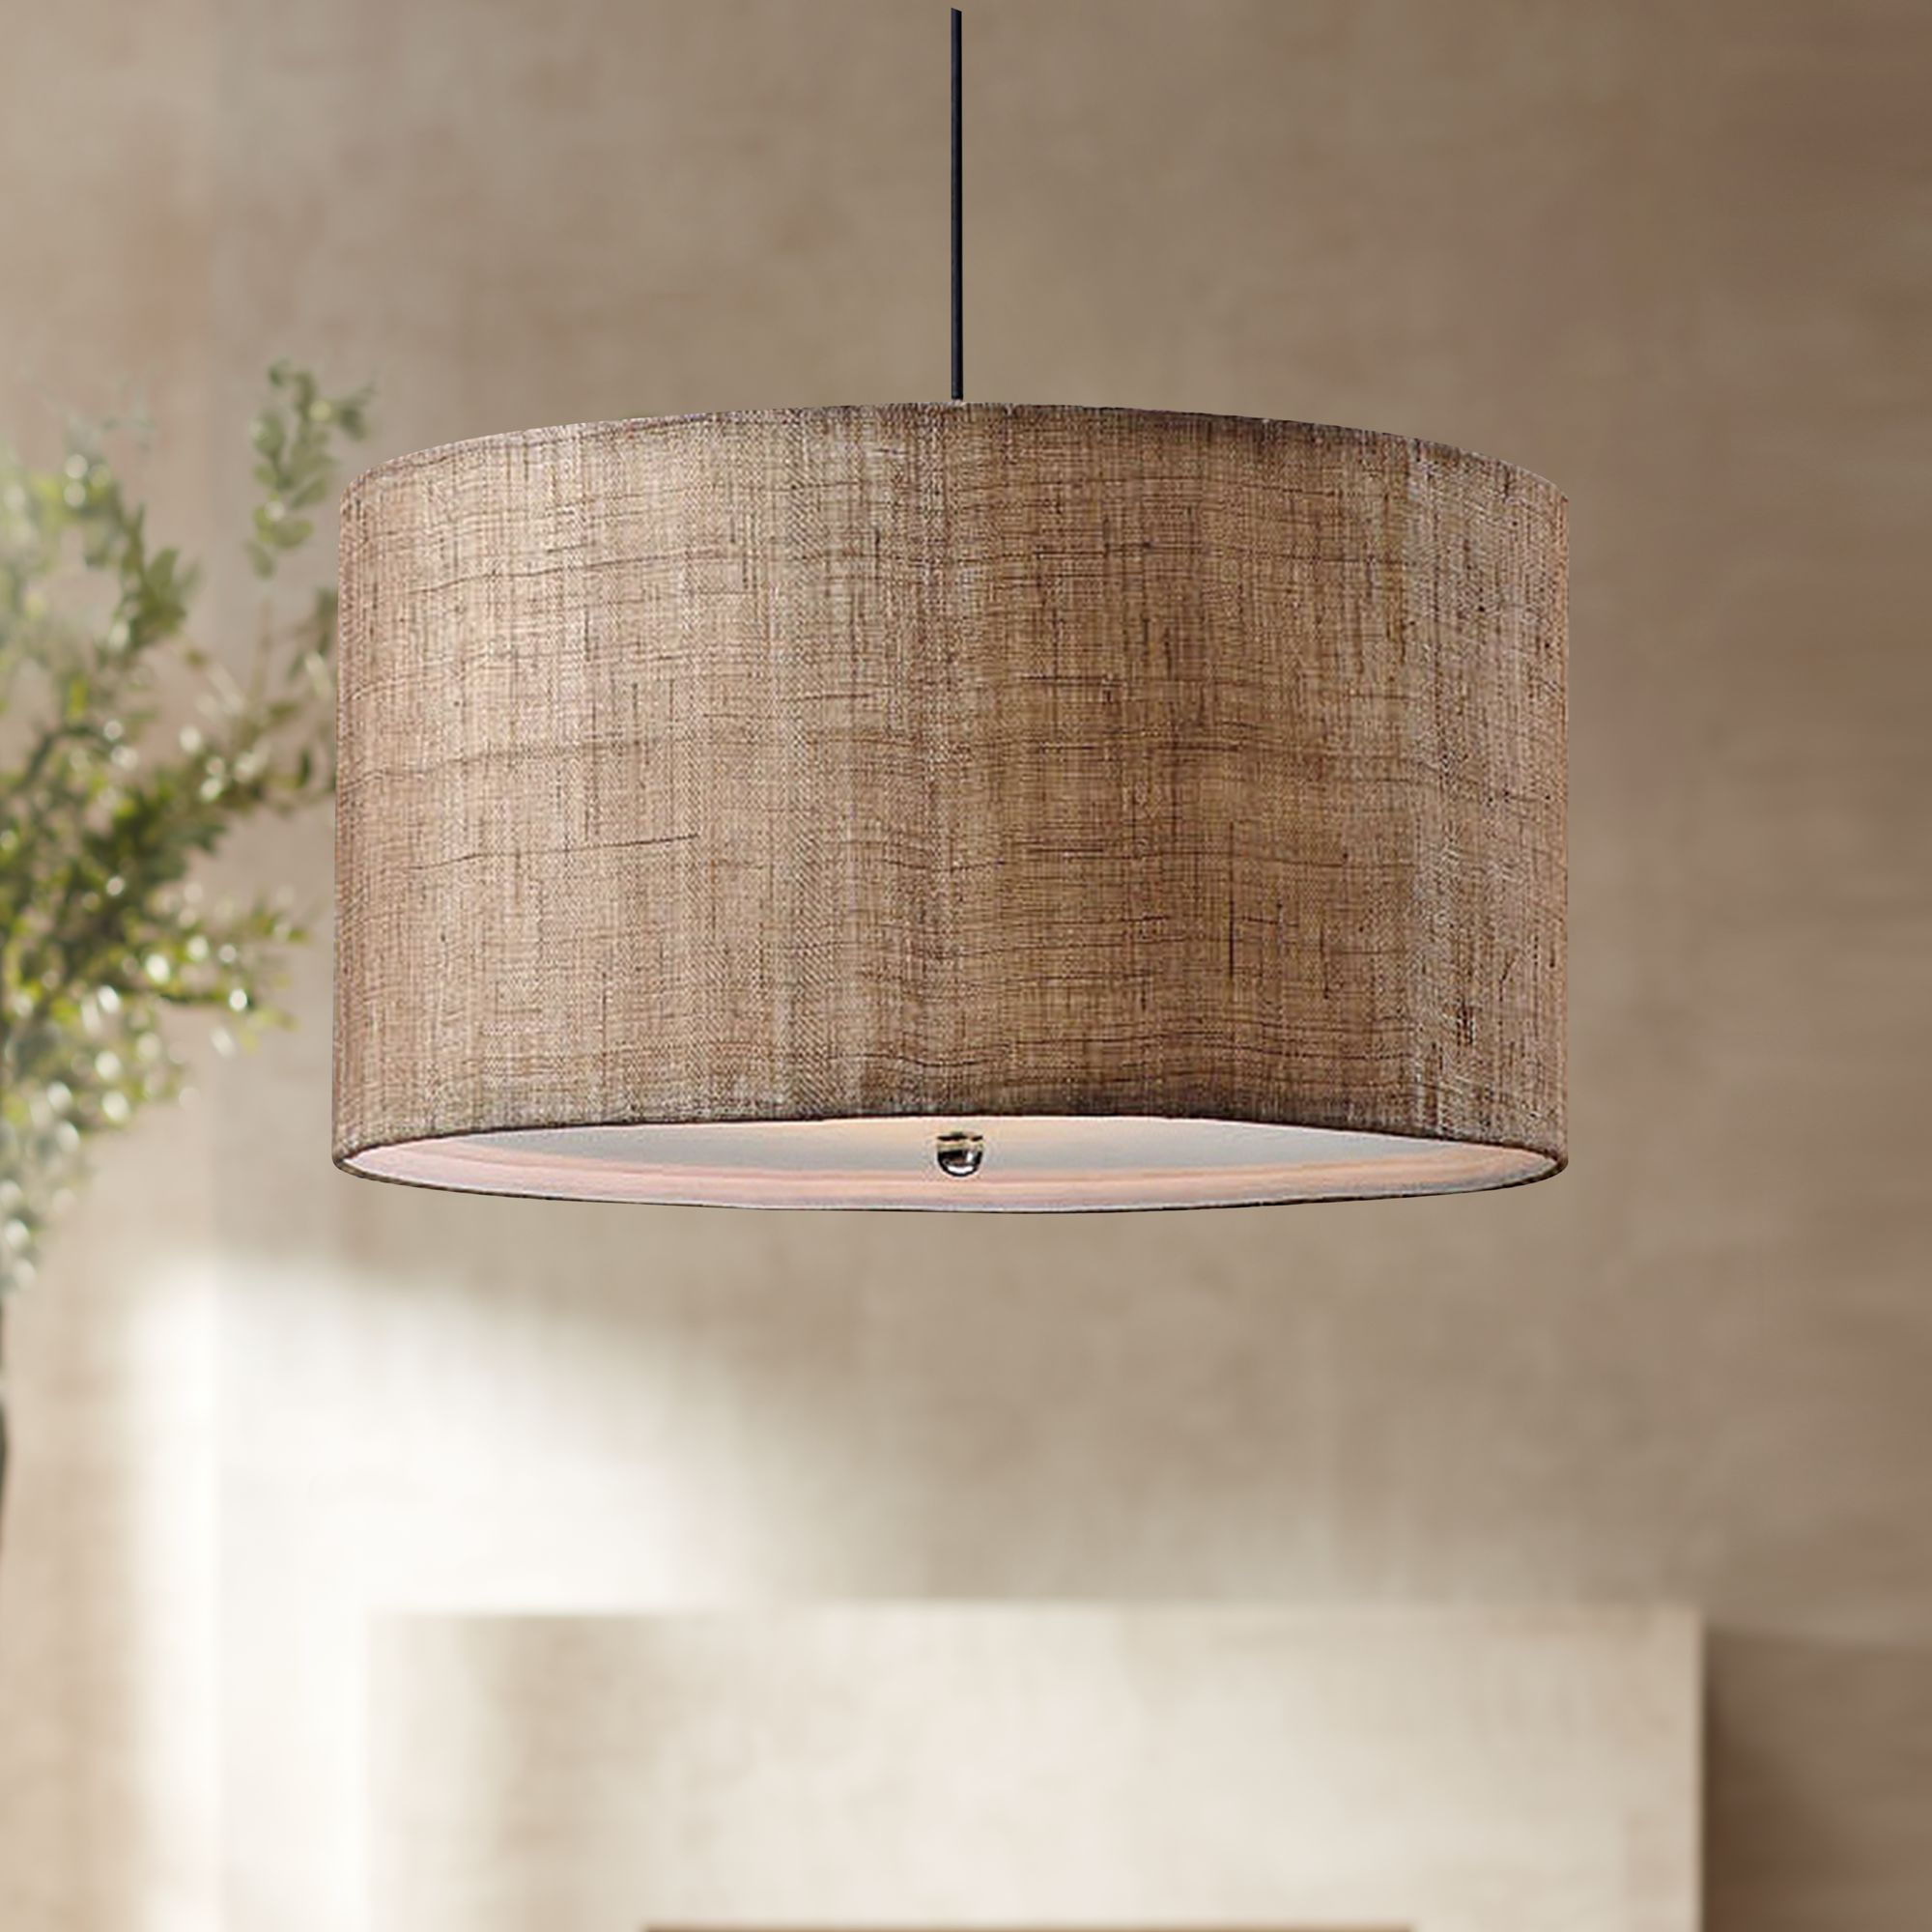 Uttermost Dafina Burlap 3-Light Pendant Light : uttermost pendant lights - azcodes.com